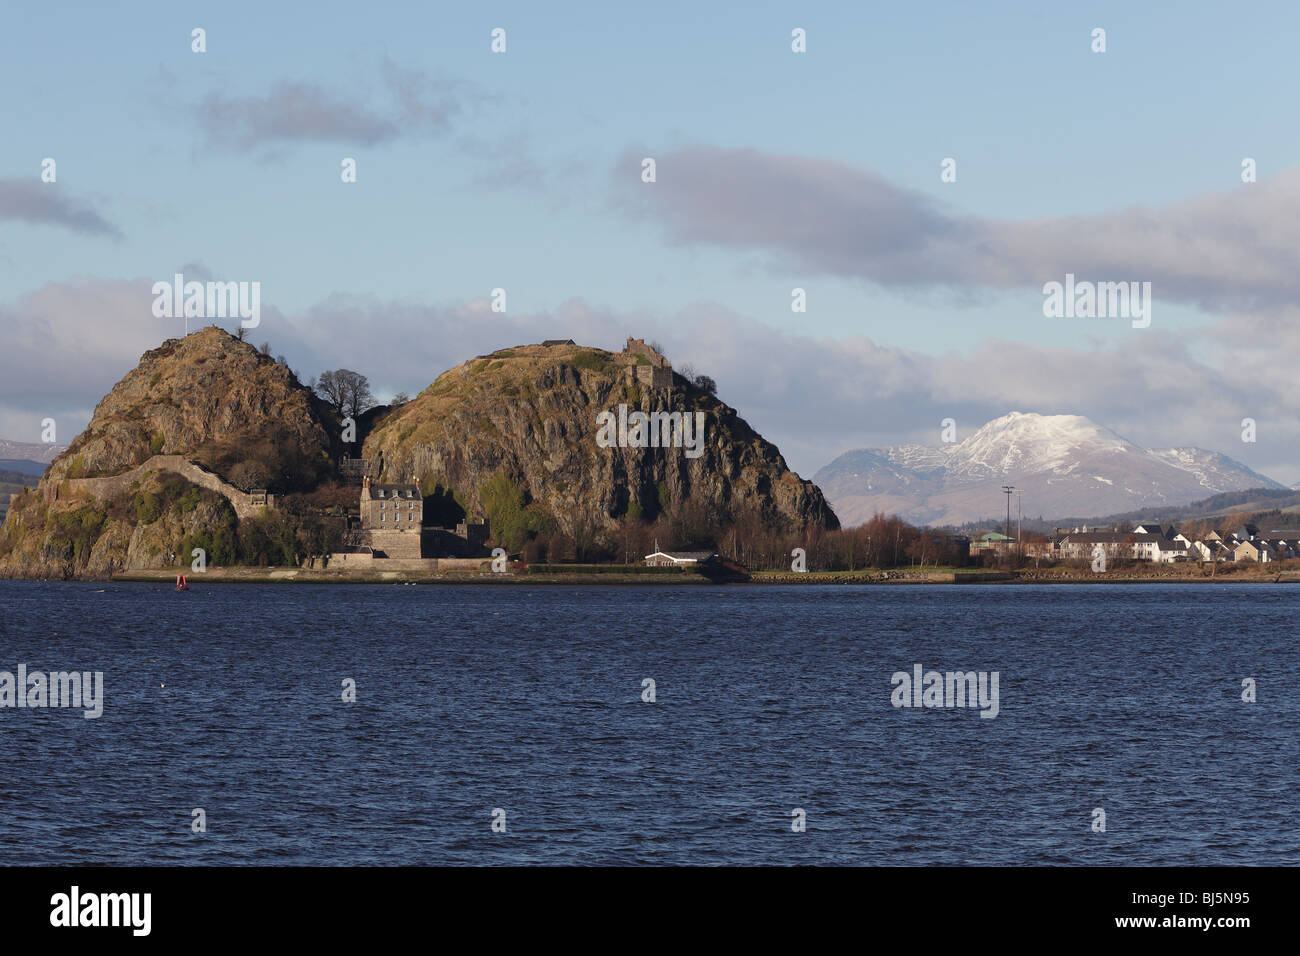 Looking across the River Clyde to Dumbarton Rock and Castle in West Dunbartonshire Scotland UK - Stock Image